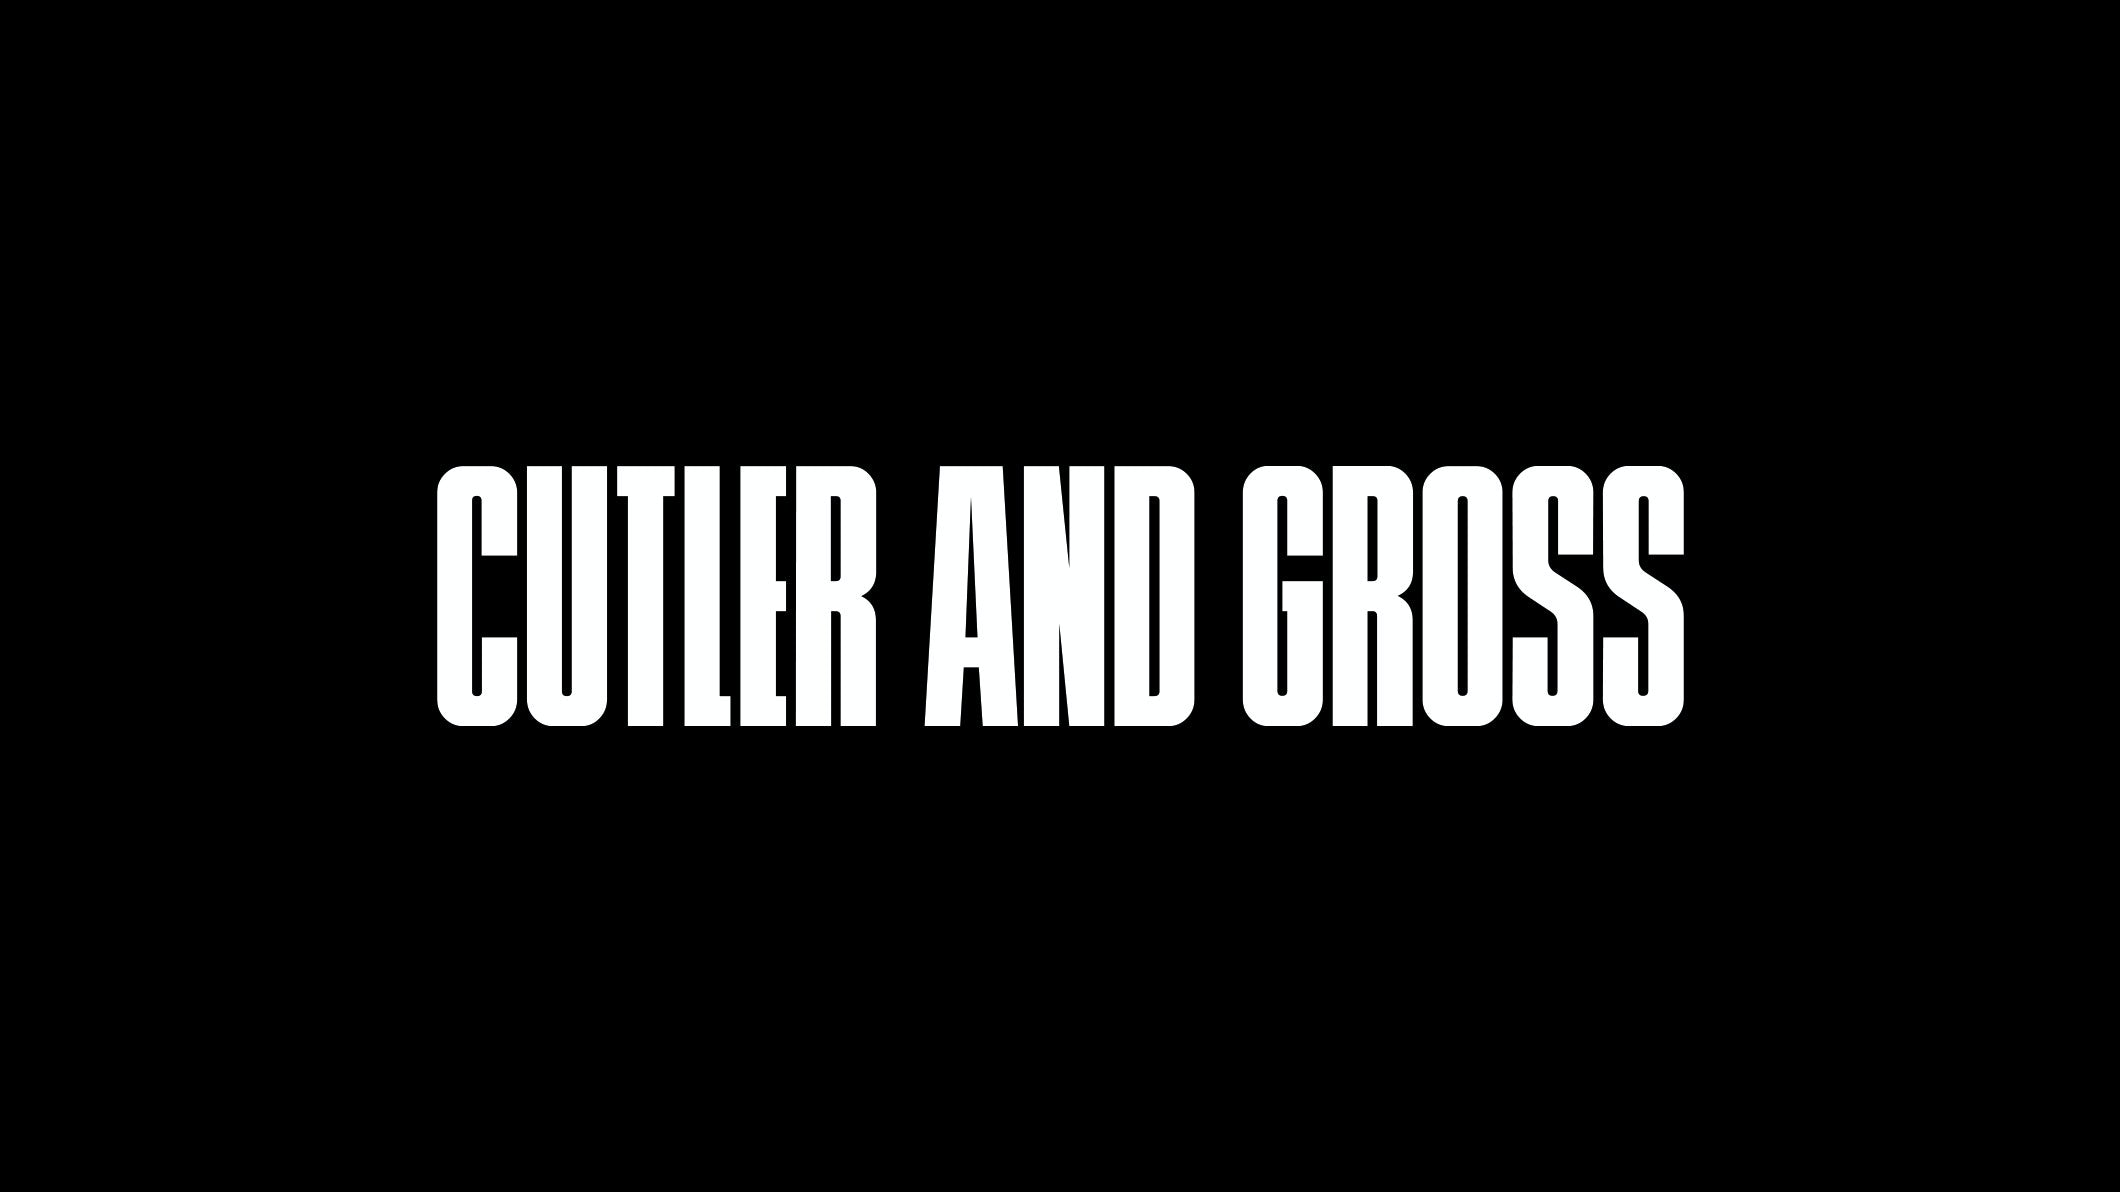 Cutler and Gross company logo